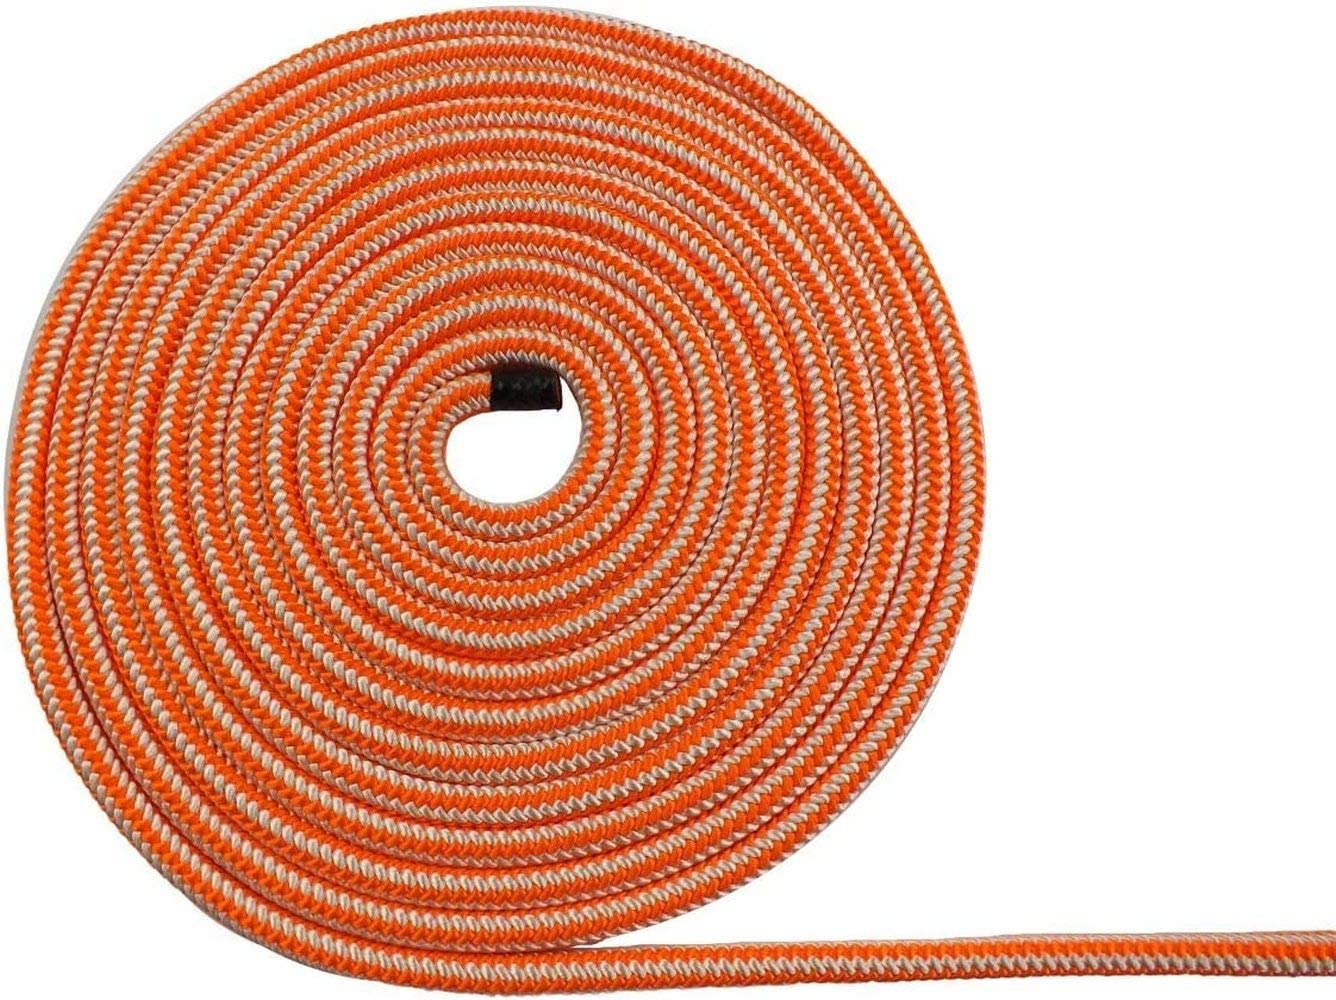 Pelican Arborist-16 Strand 12.7 mm 1 2 Super popular specialty store Rope inch - 7000 lbs Br OFFicial store